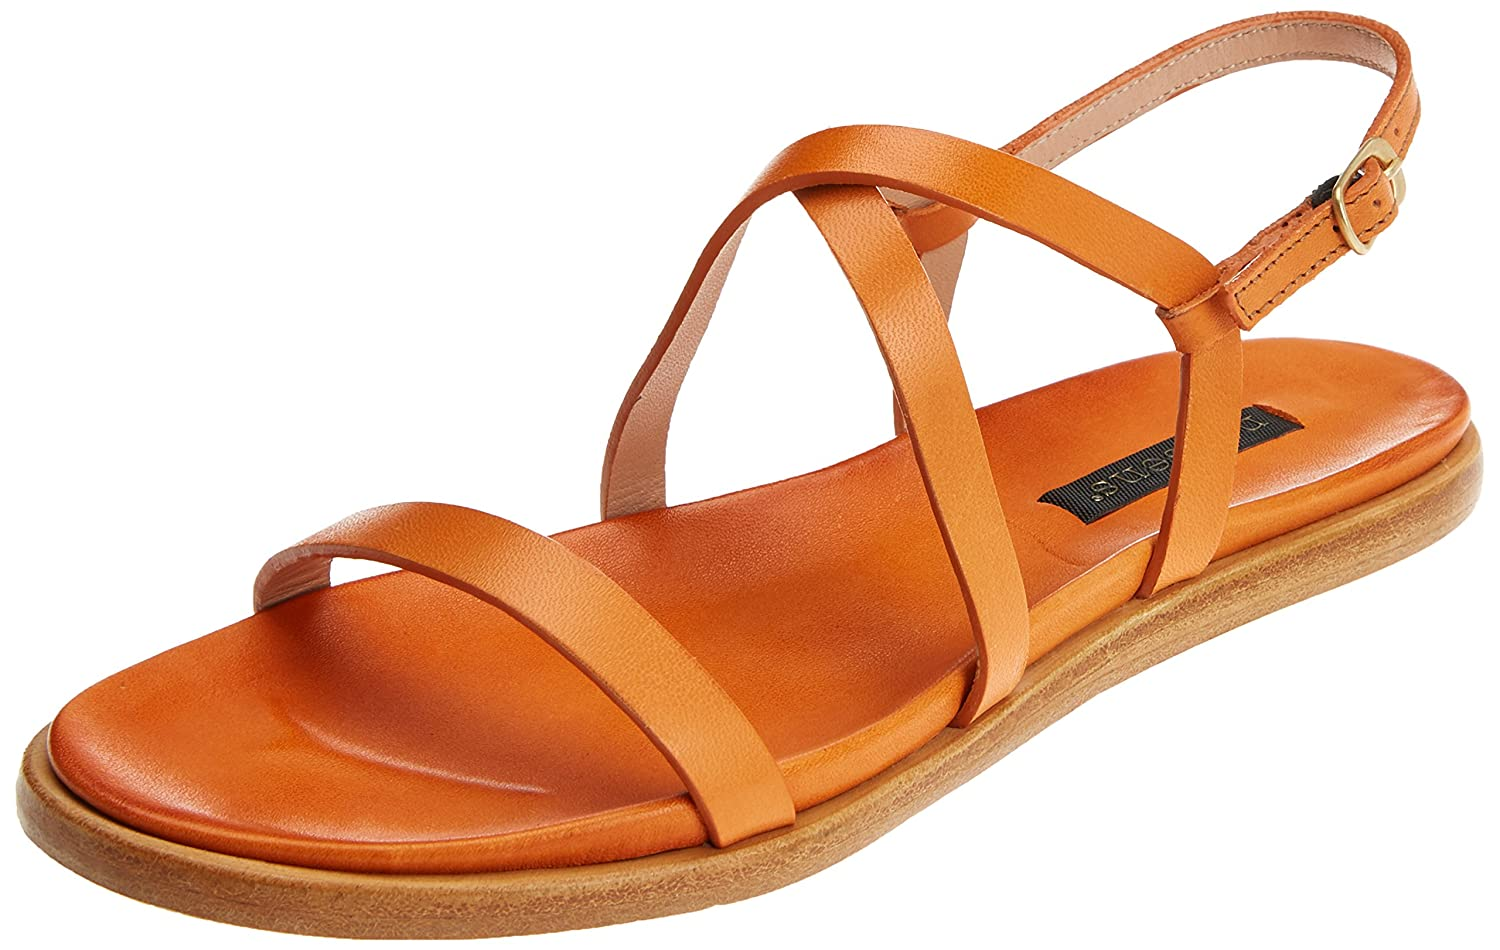 Womens S946 Open-Toe Sandals Neosens